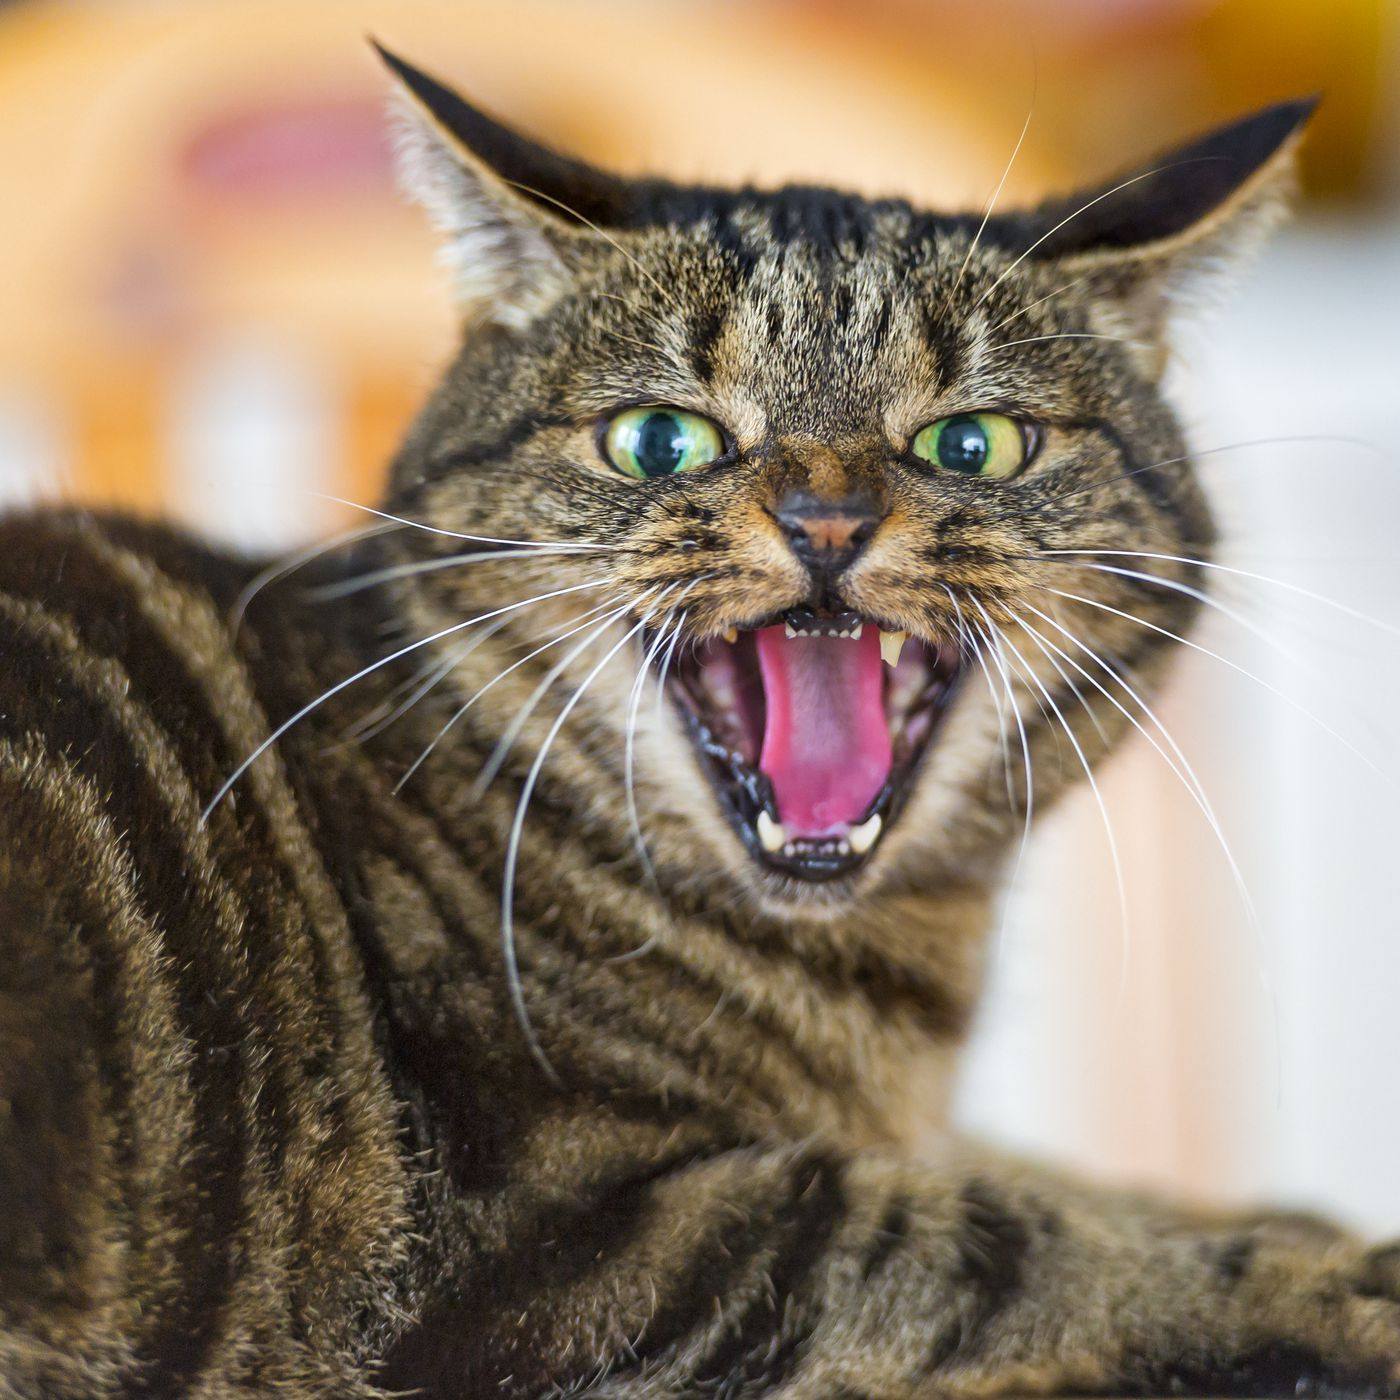 What Research Says About Cats They Re Selfish Unfeeling Environmentally Harmful Creatures Vox